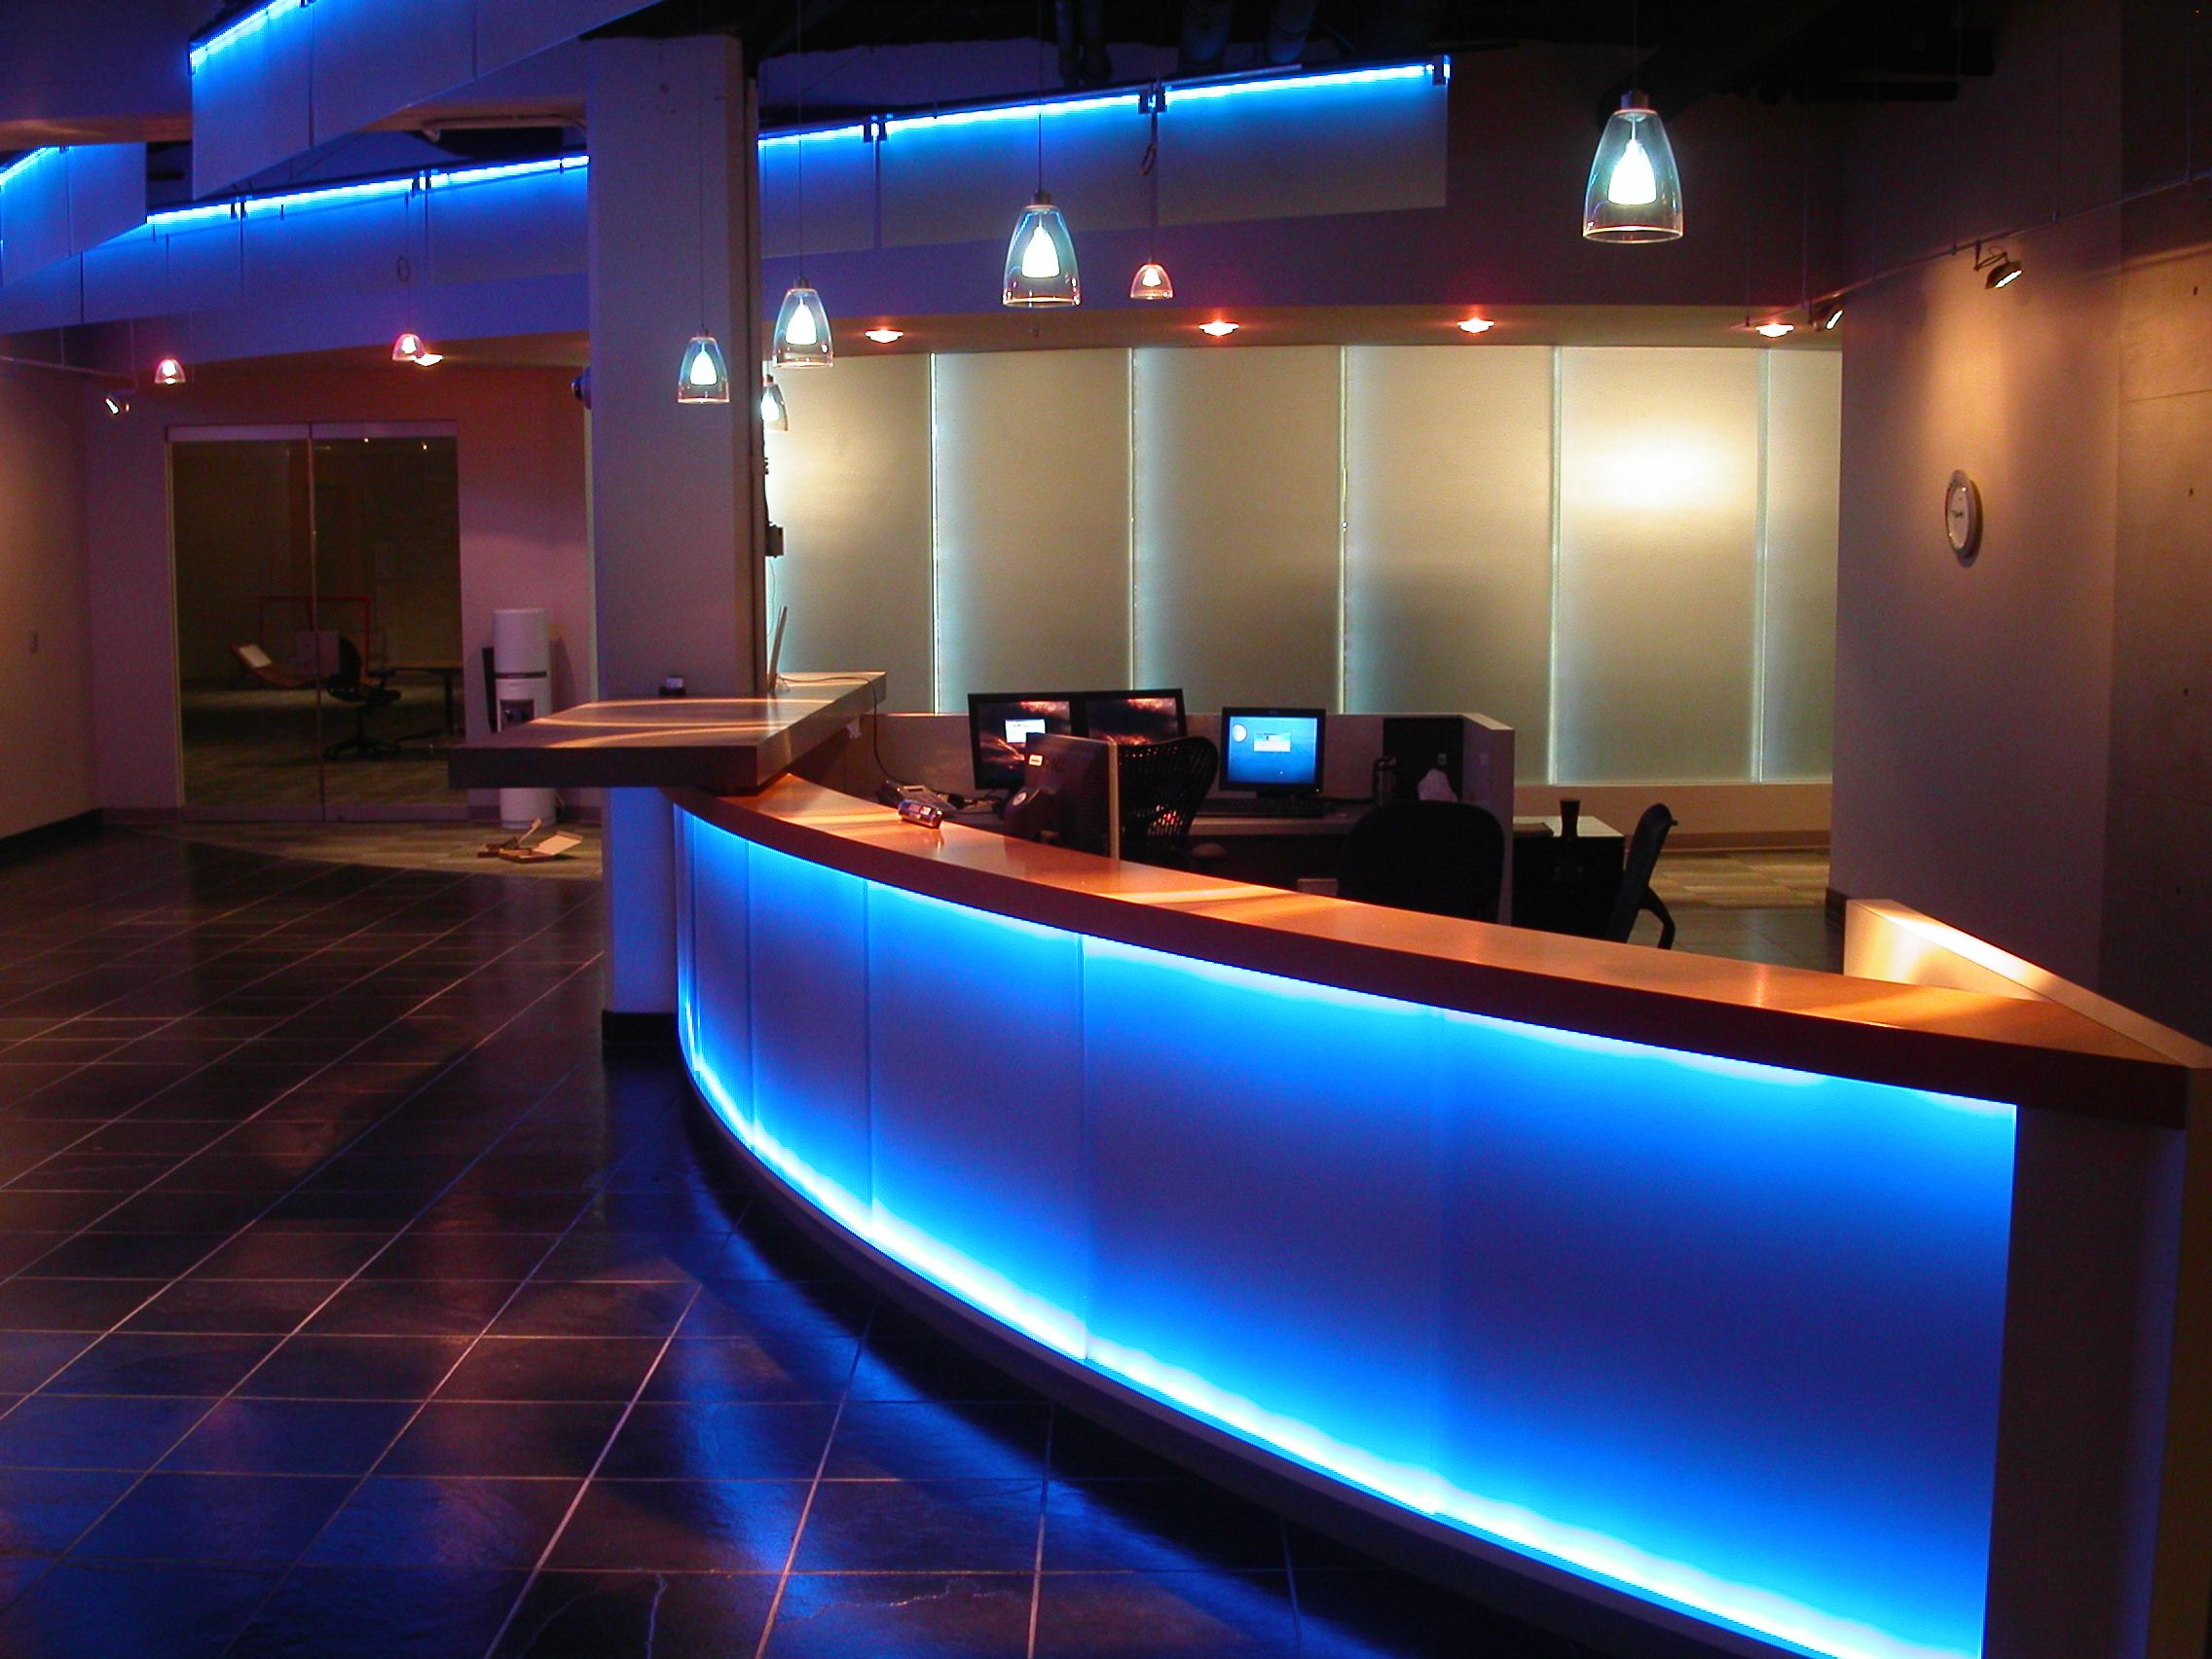 Exledu0027s LED Strip Lighting Highlighting Architectural Features And The Desk  Within An Office Reception Area